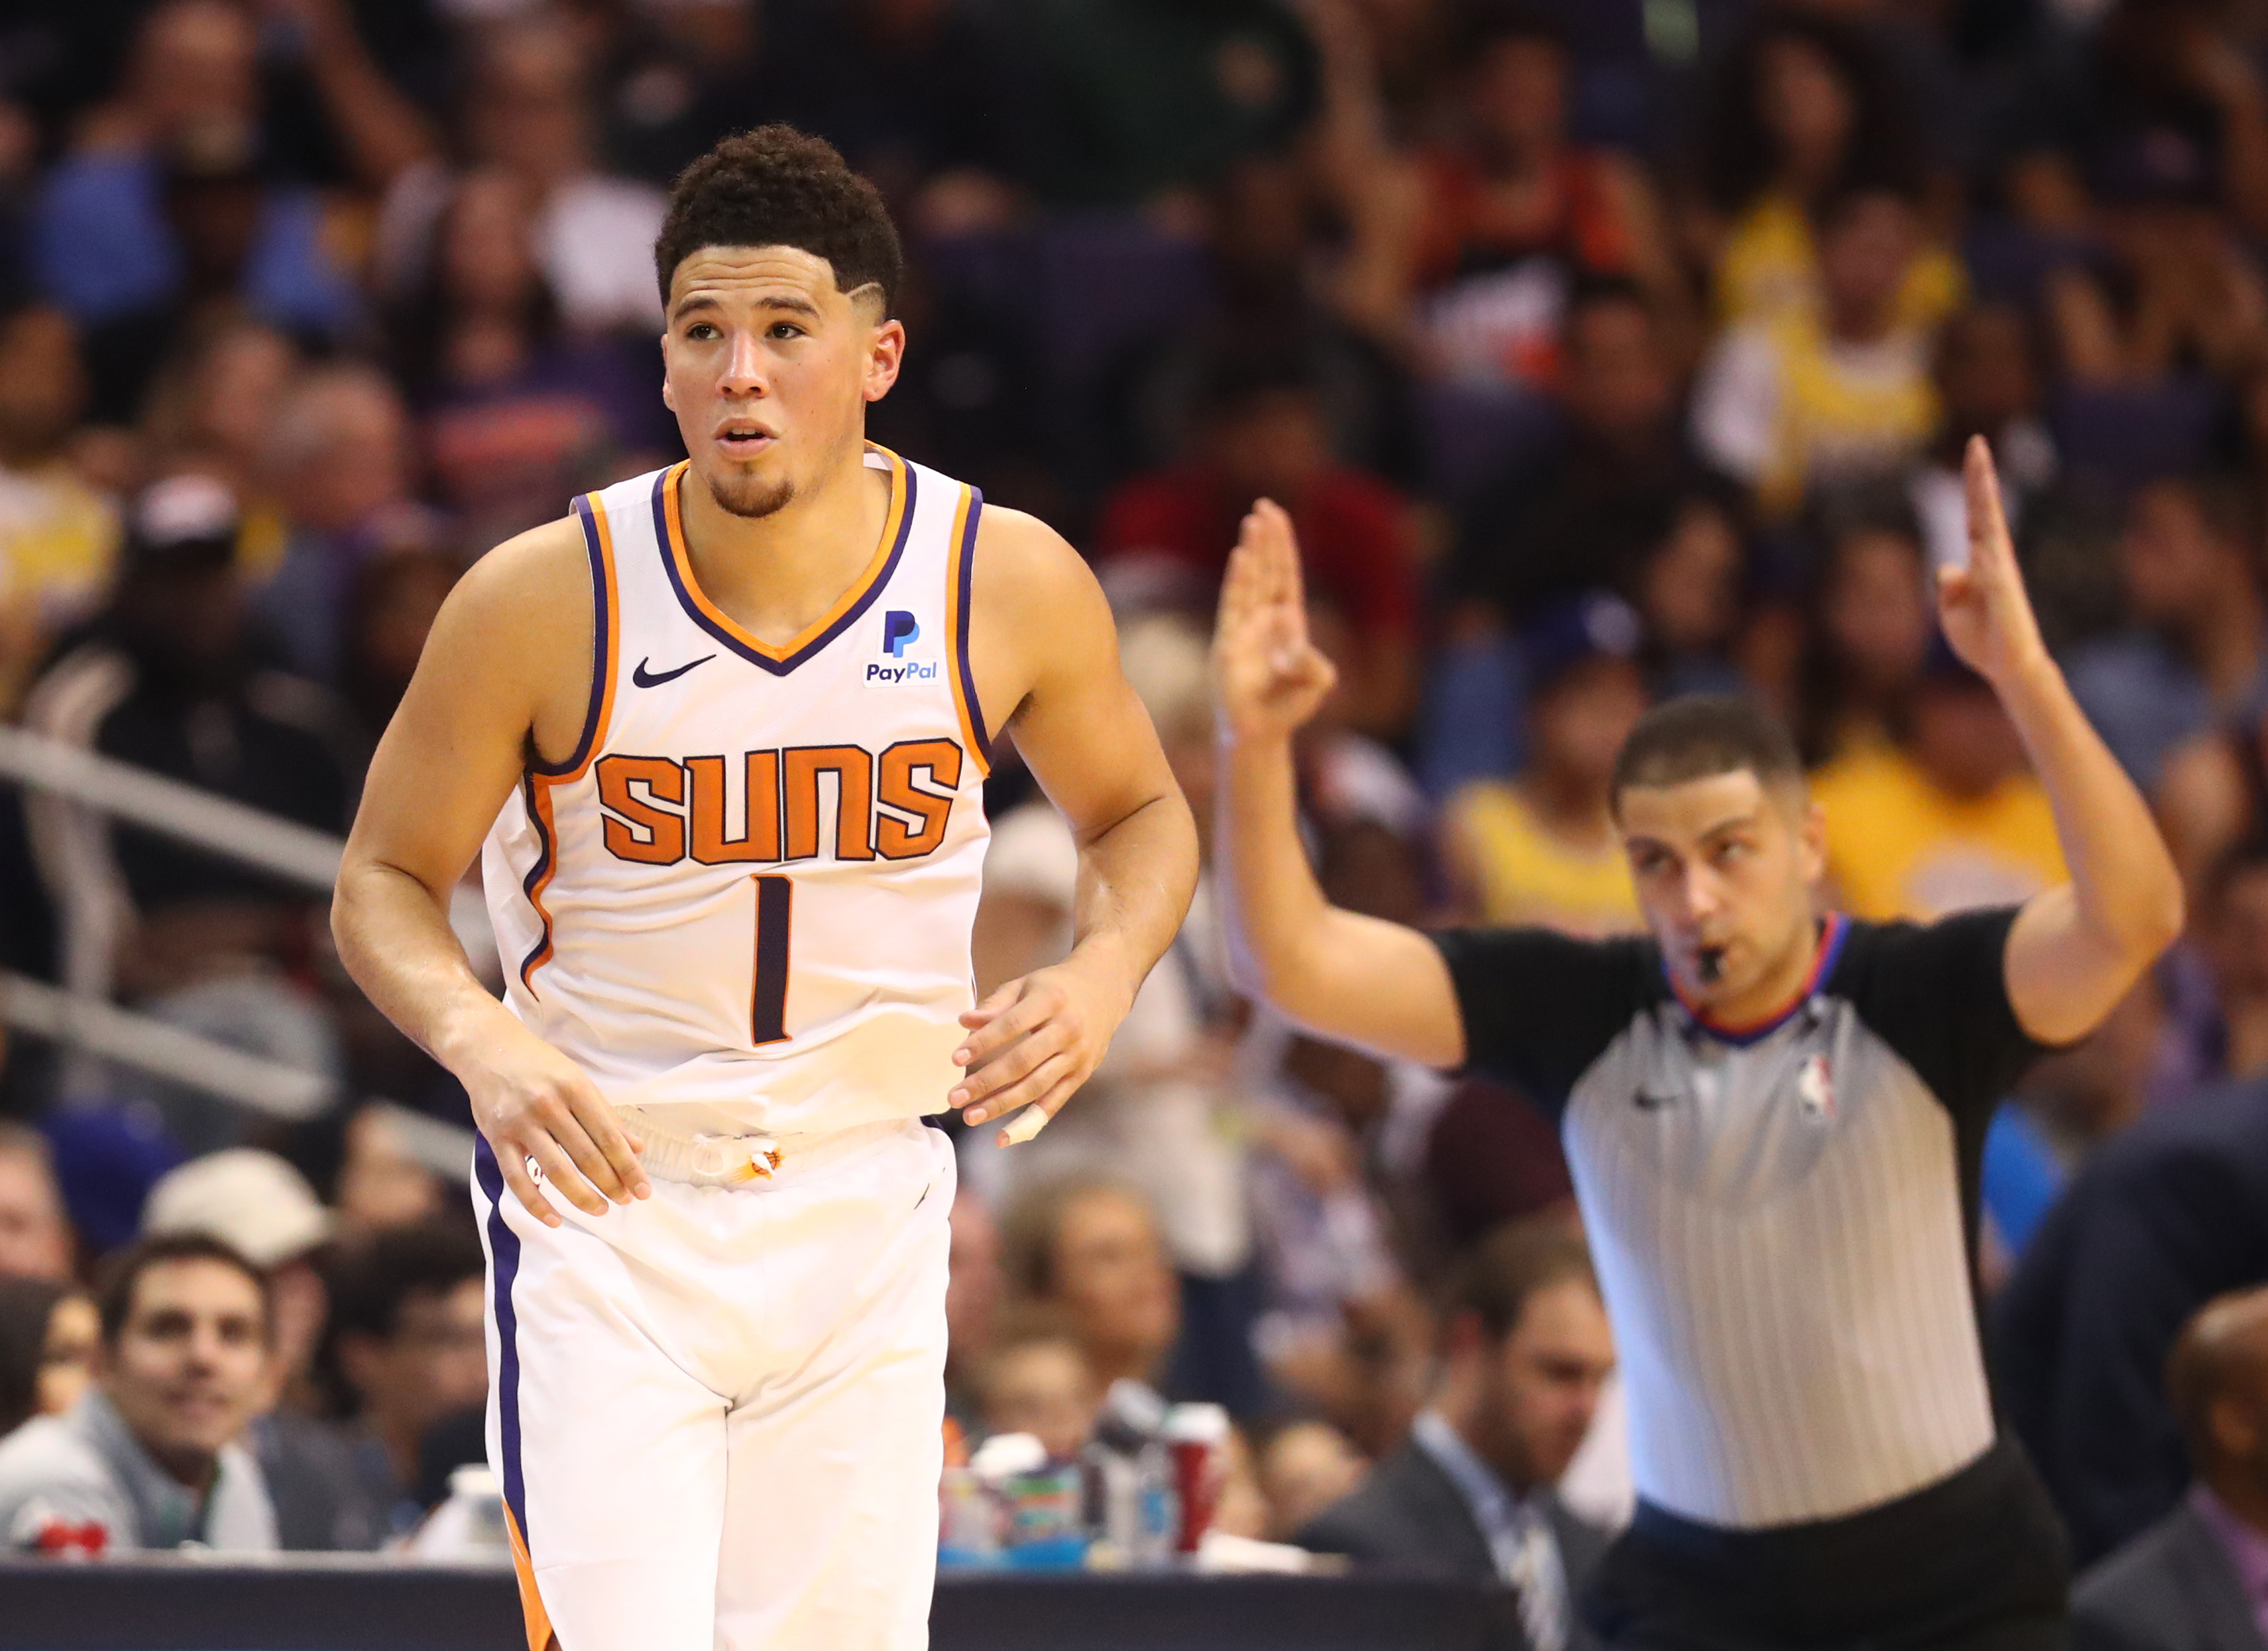 Suns' shooting guard Devin Booker is taking on a larger leadership role